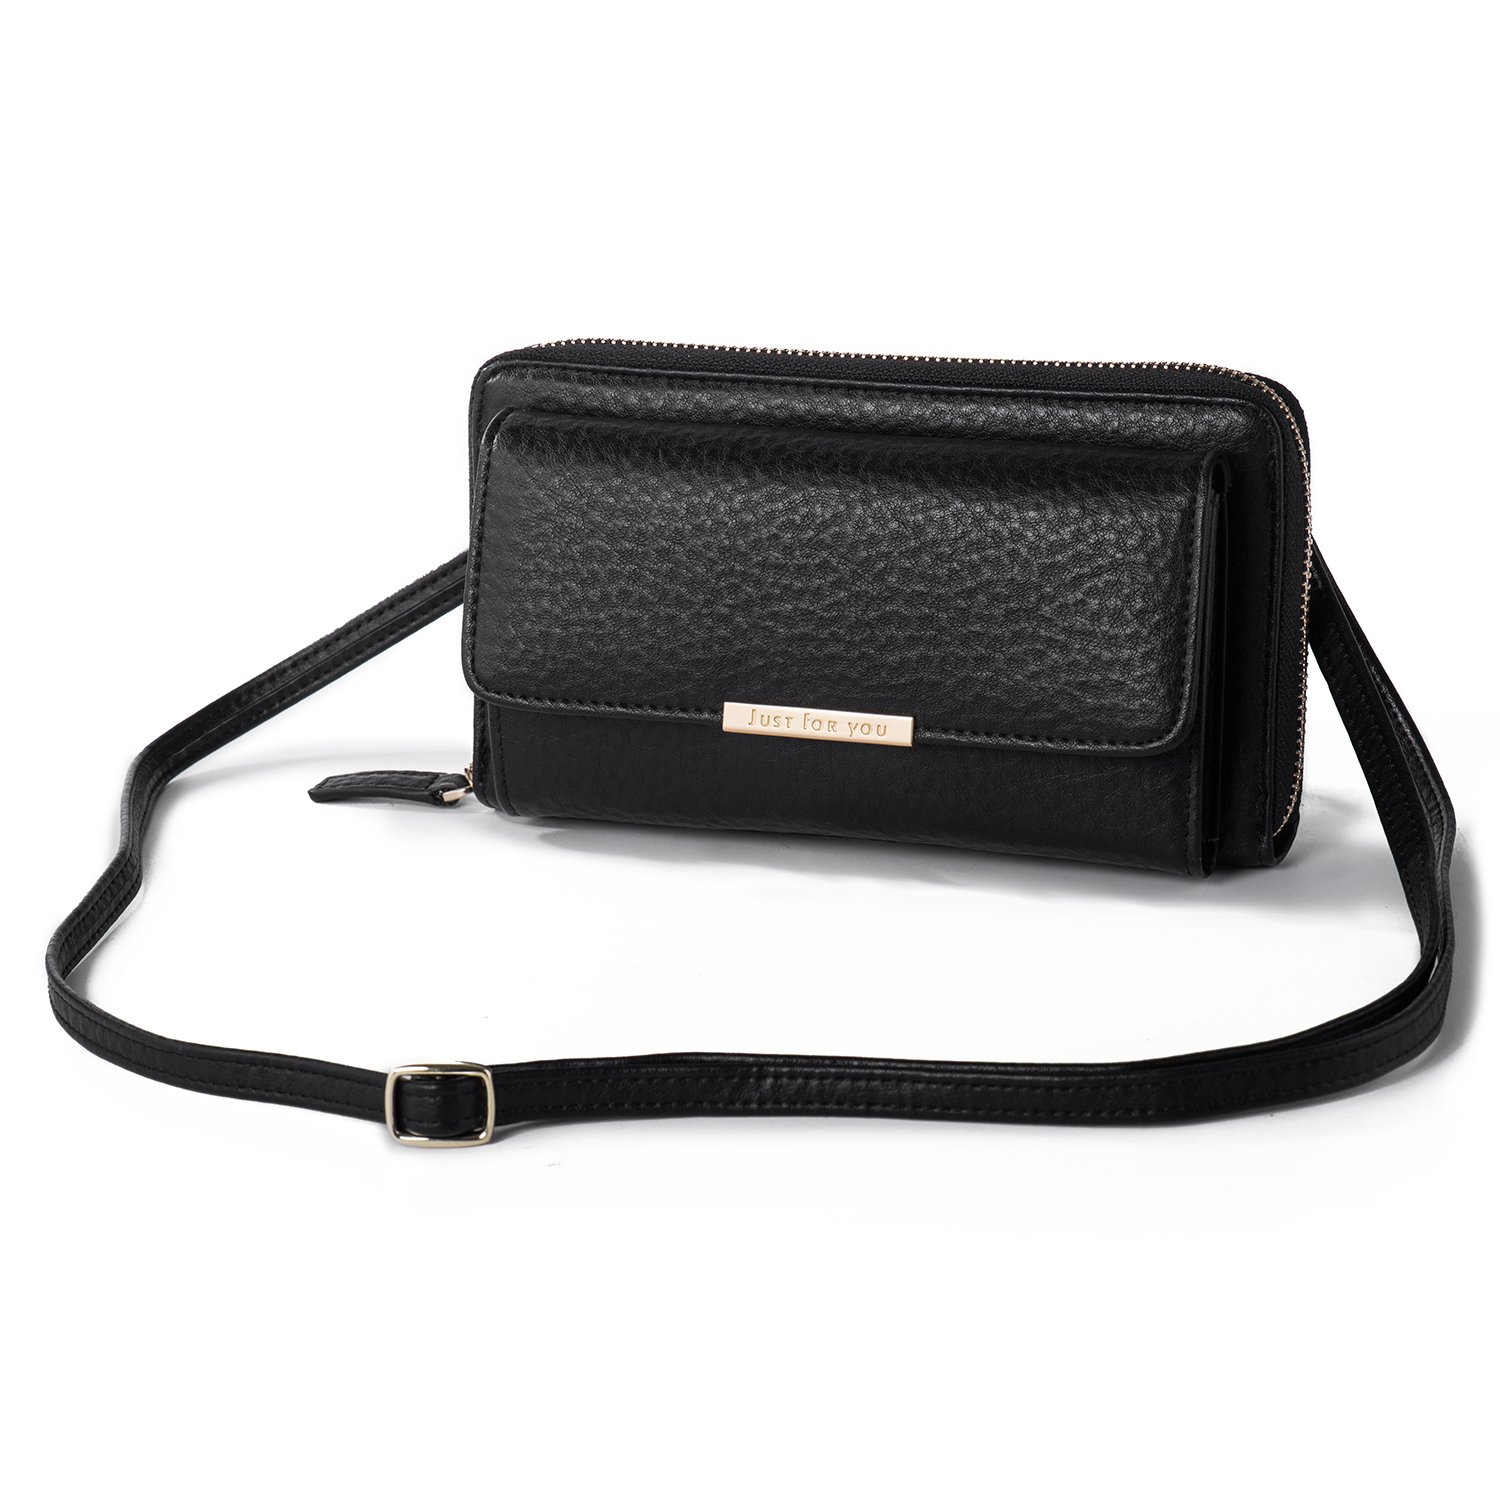 4bbe1d42dba6 Amazon.com  Crossbody Wallet Cellphone Purse for Women Clutch Handbag PU  Leather Cross Body Bag with Flap Multi Compartment for Cards Cash  Smartphone Black ...